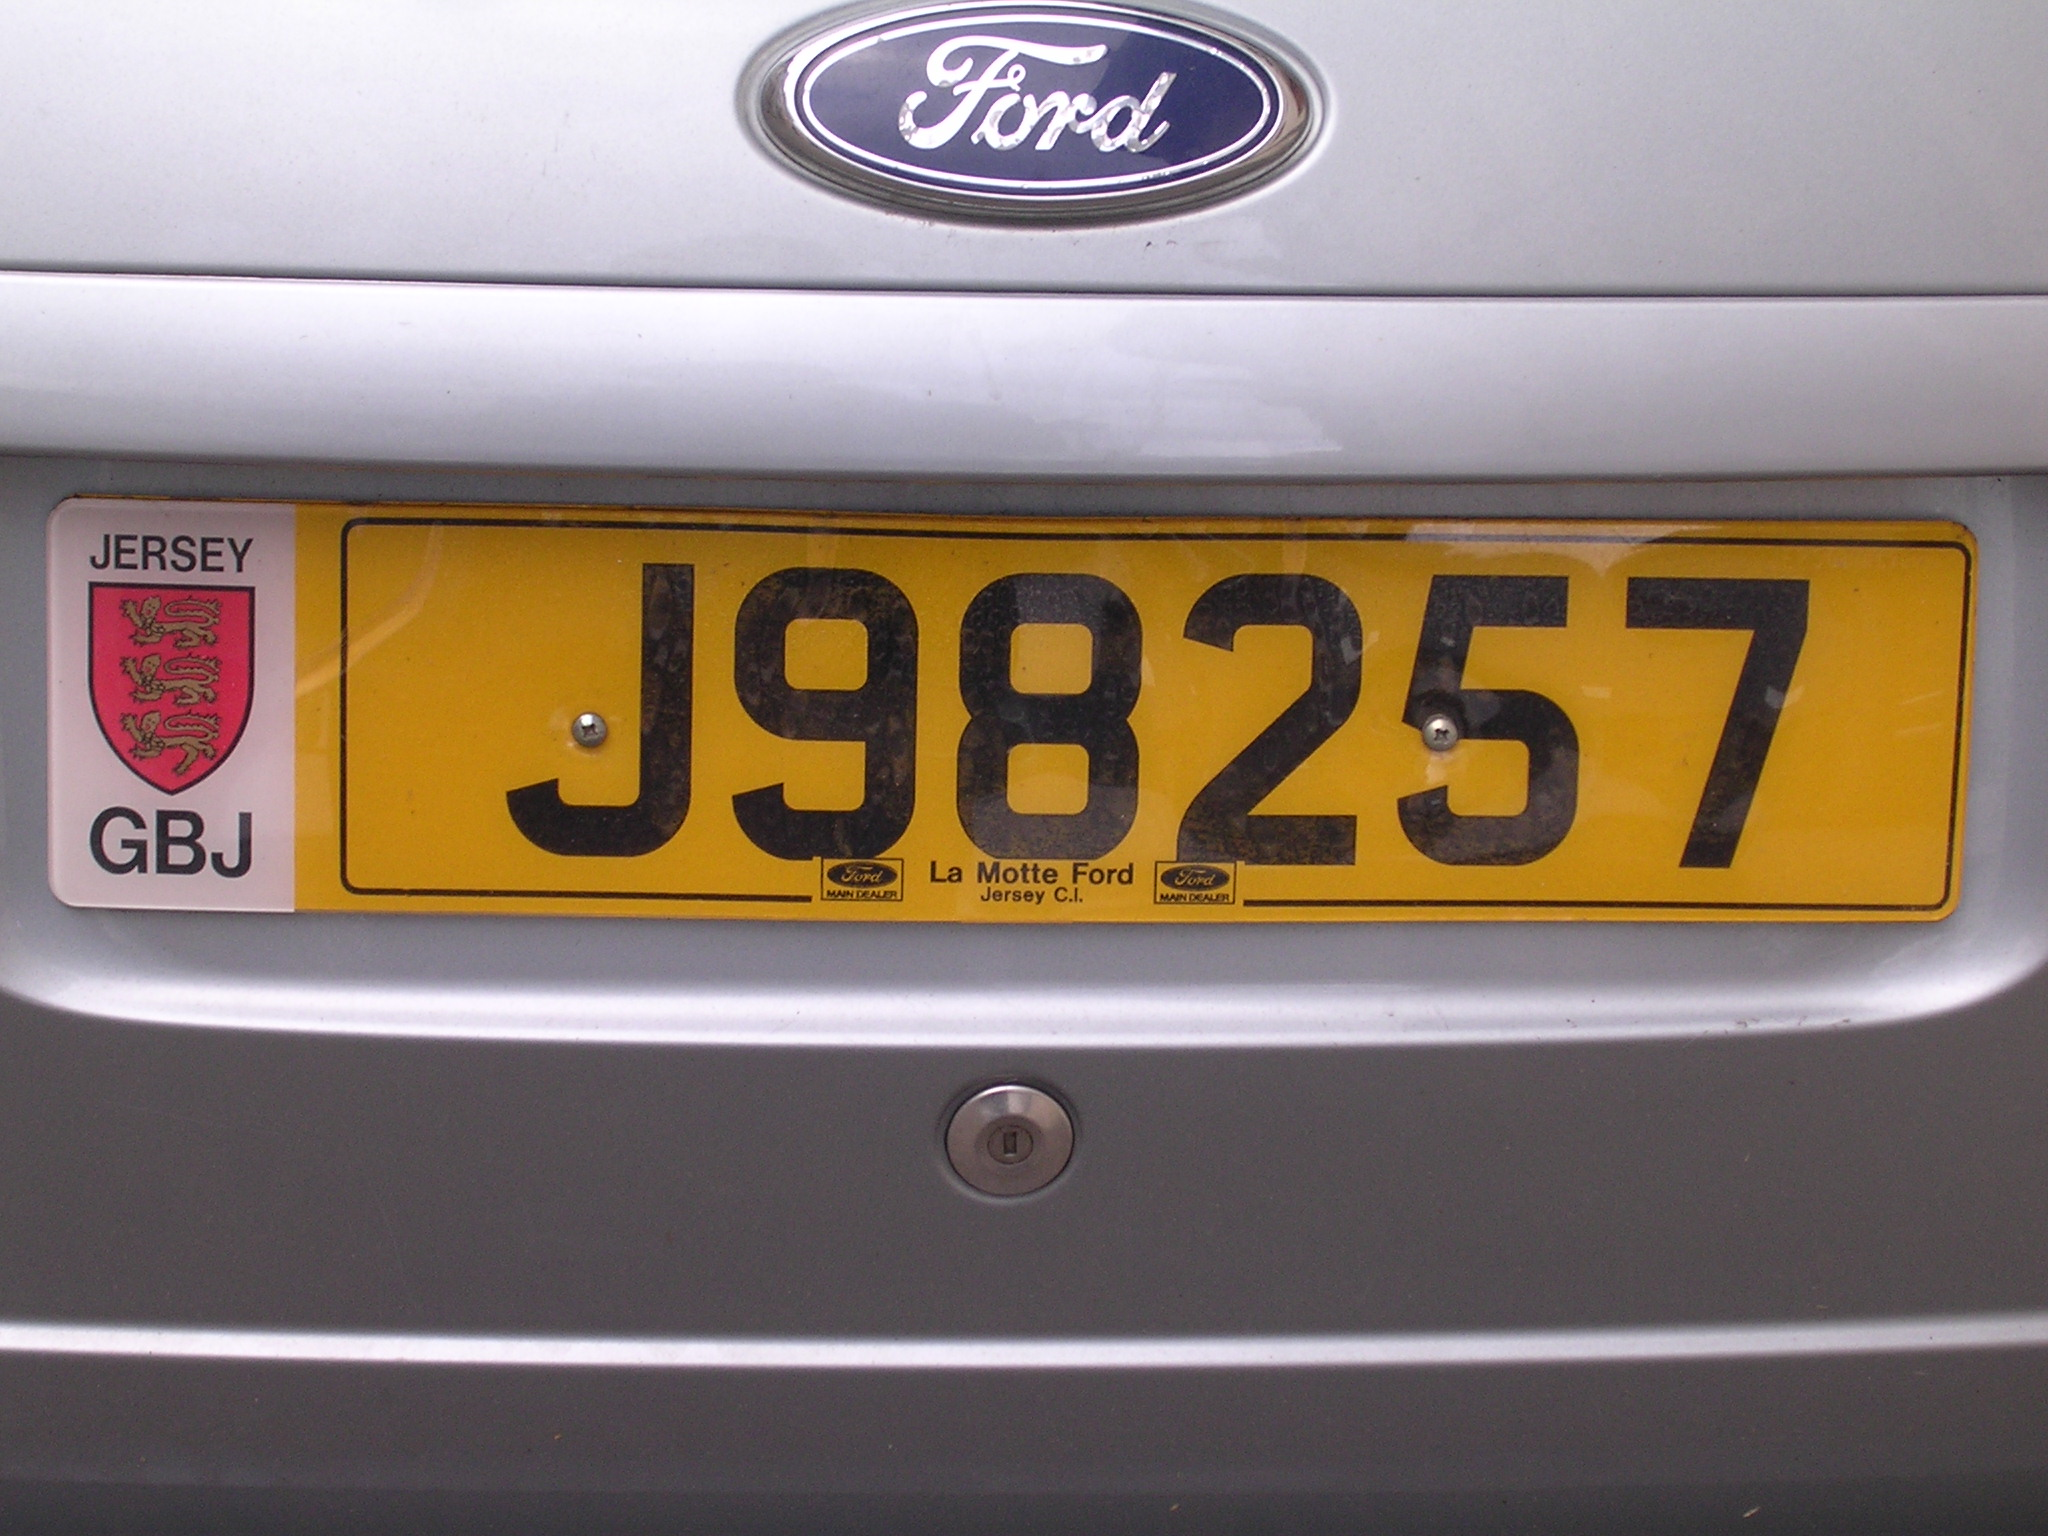 Car colour number plate - Car Colour Number Plate 12